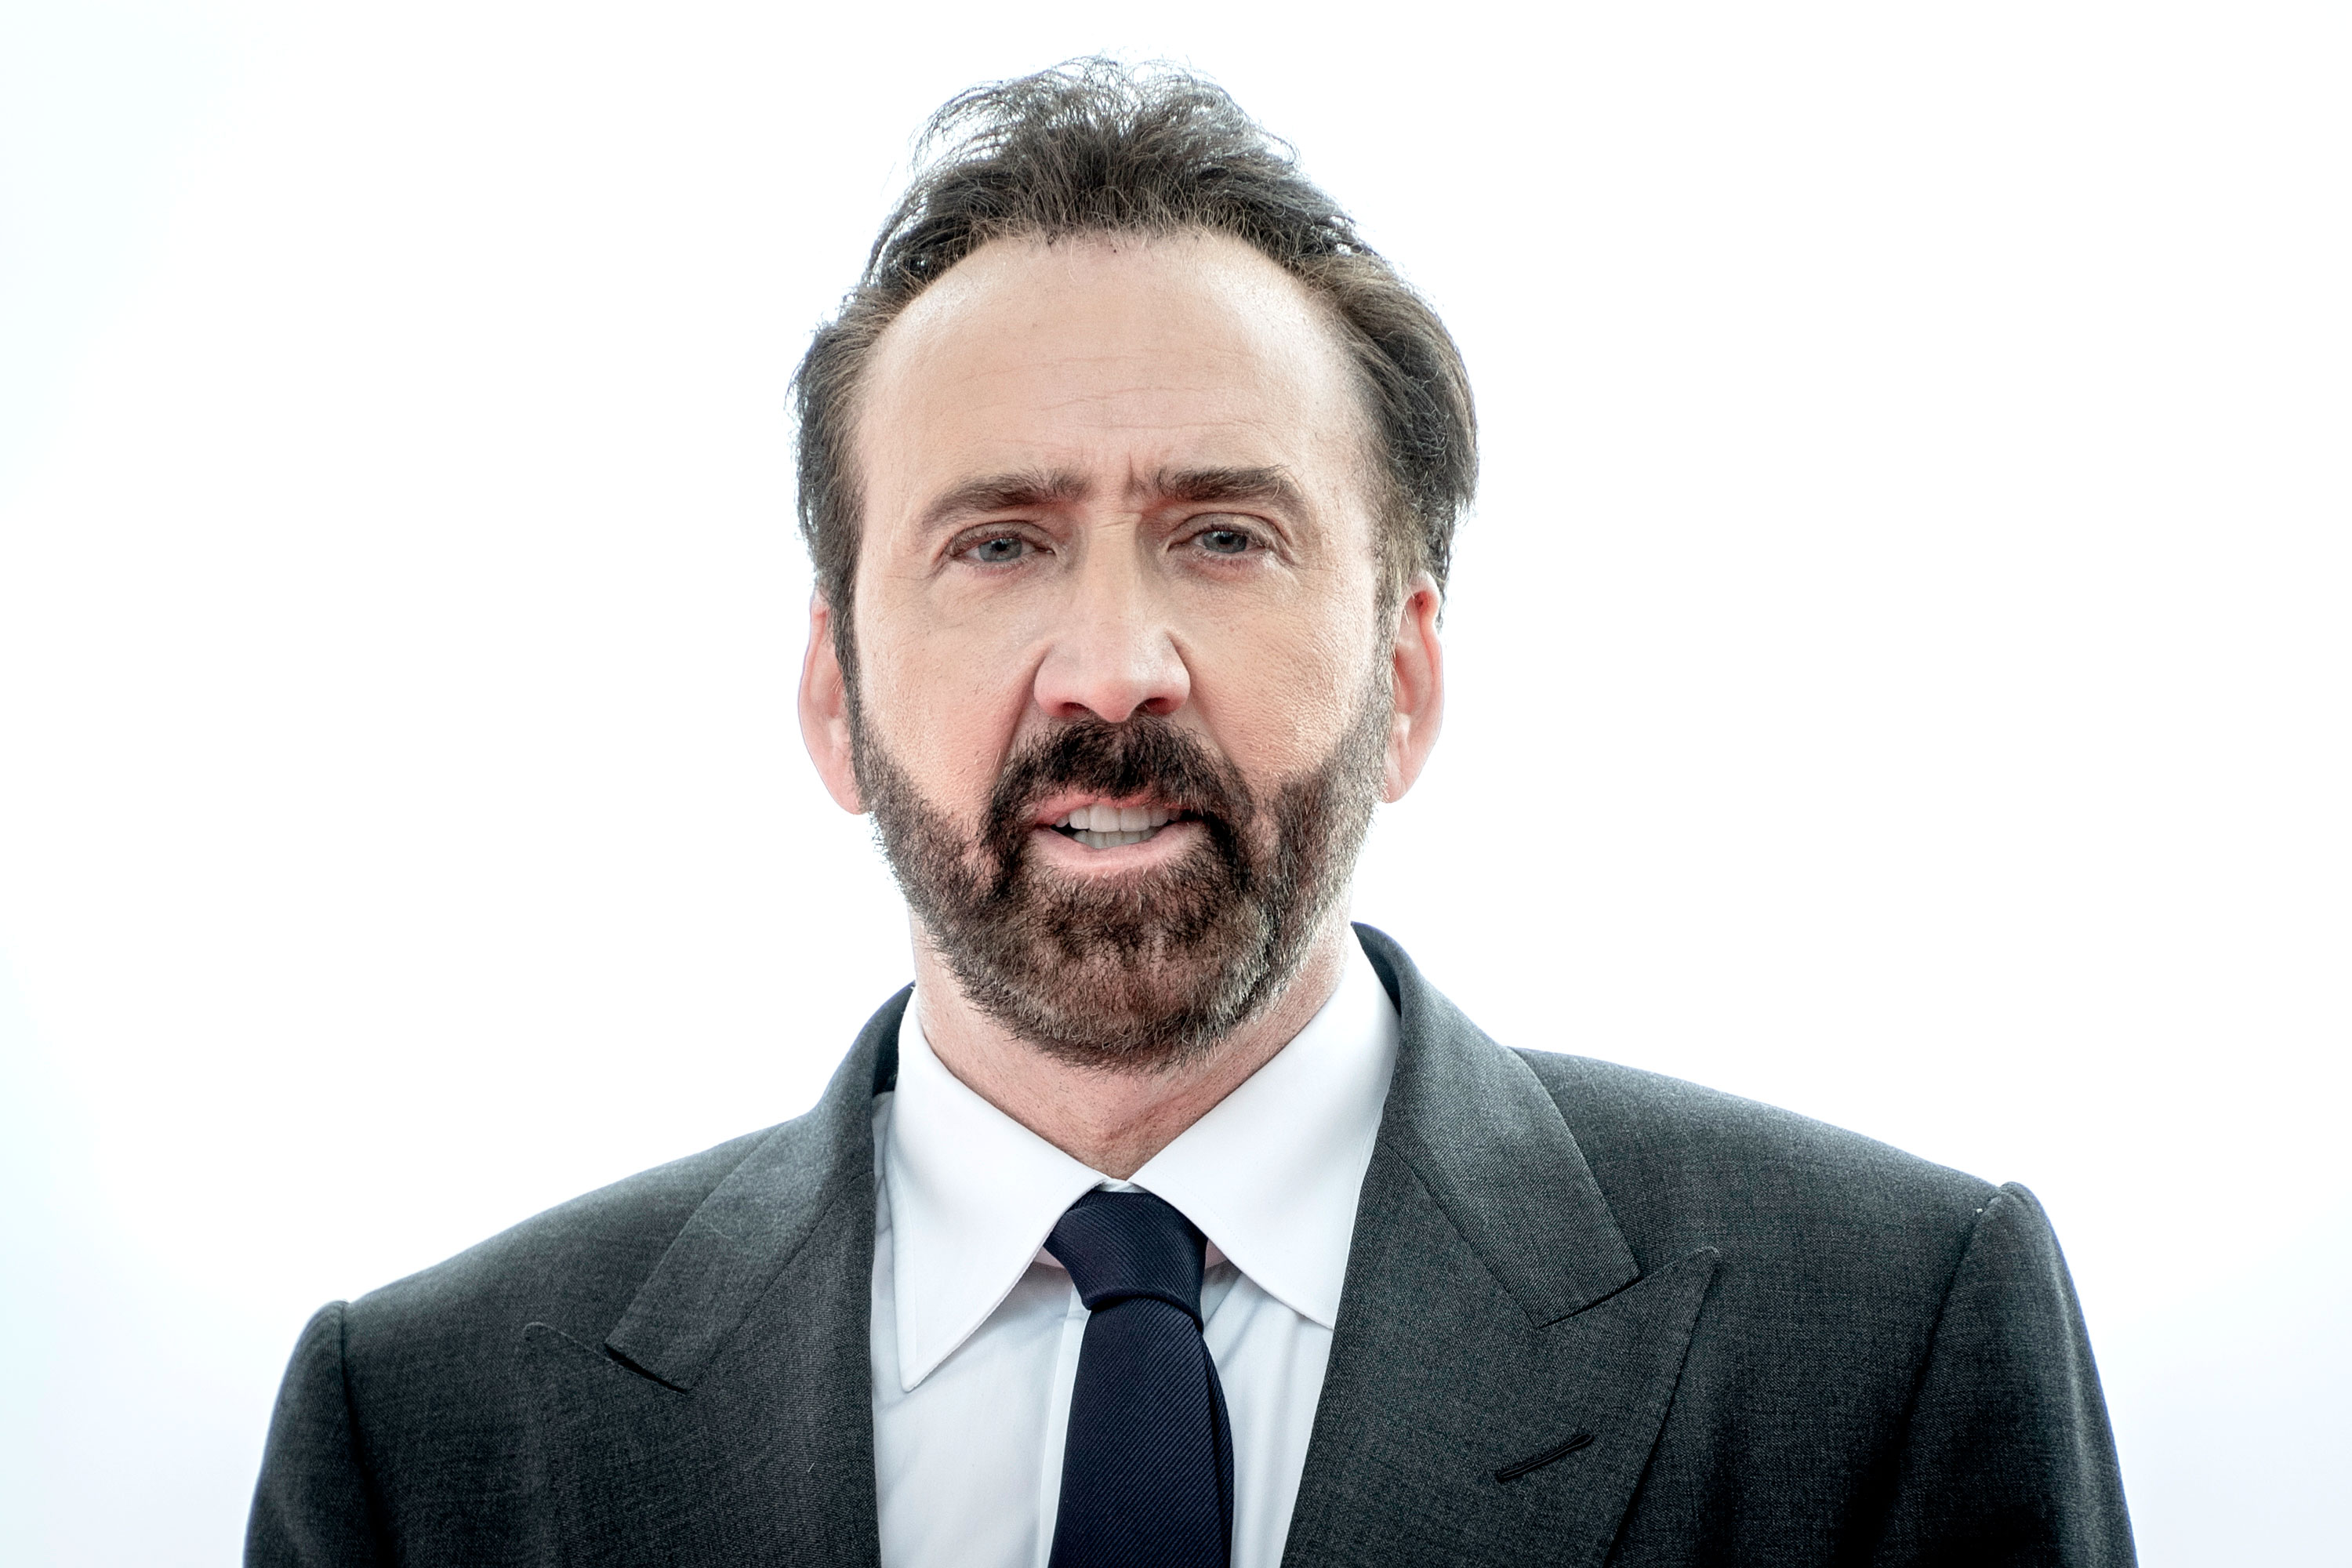 """Nicolas Cage Erika Koike Shorest Hollywood Weddings - The National Treasure actor filed for an annulment of his marriage to Erika Koike just four days after tying the knot with the makeup artist in Las Vegas. According to court documents obtained by Us Weekly, Cage alleged to be too intoxicated to fully """"recognize or understand the full impact of his actions."""""""